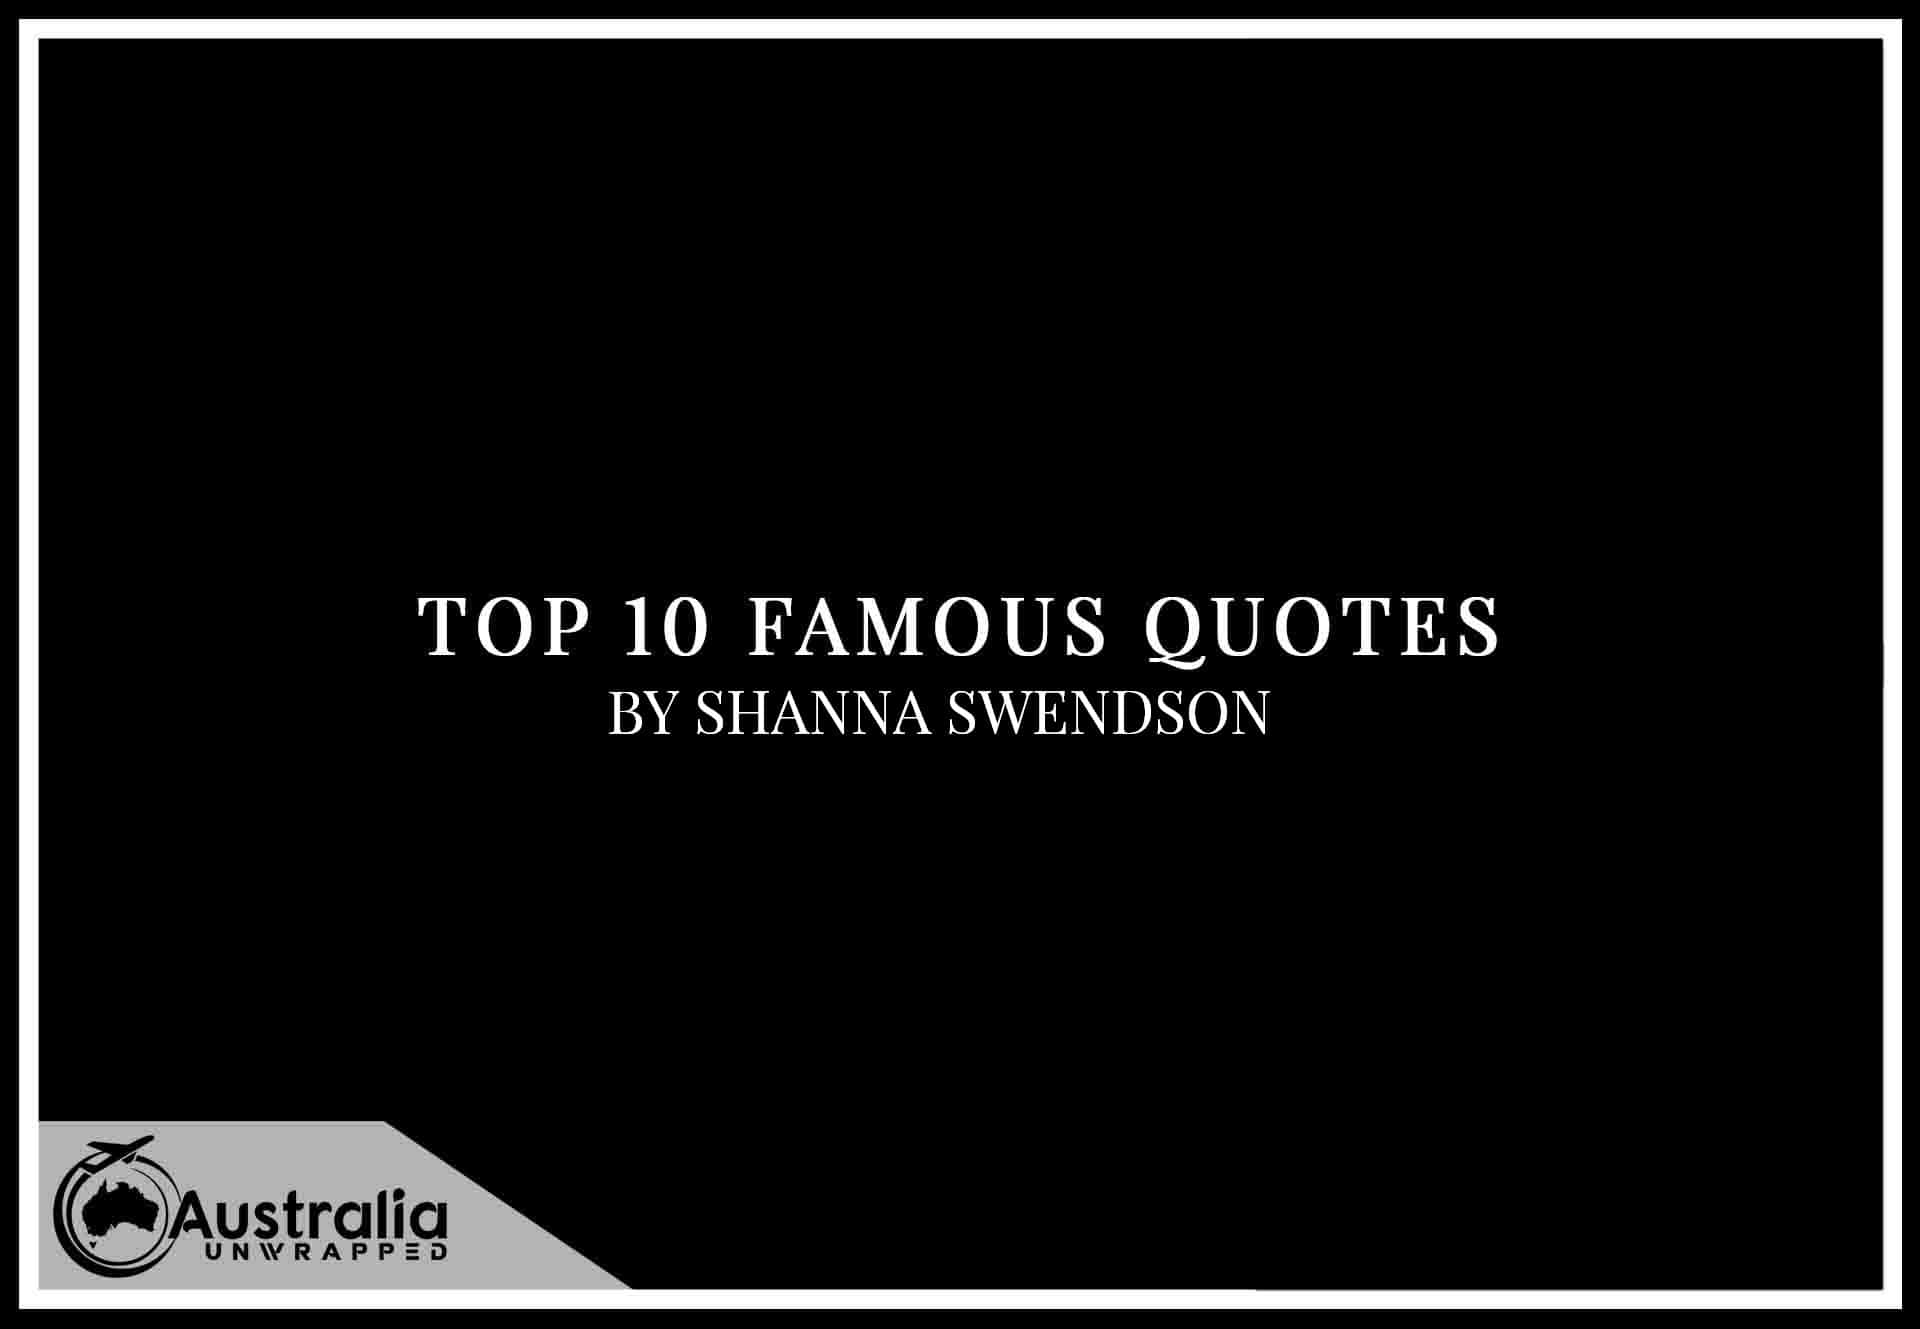 Top 10 Famous Quotes by Author Shanna Swendson